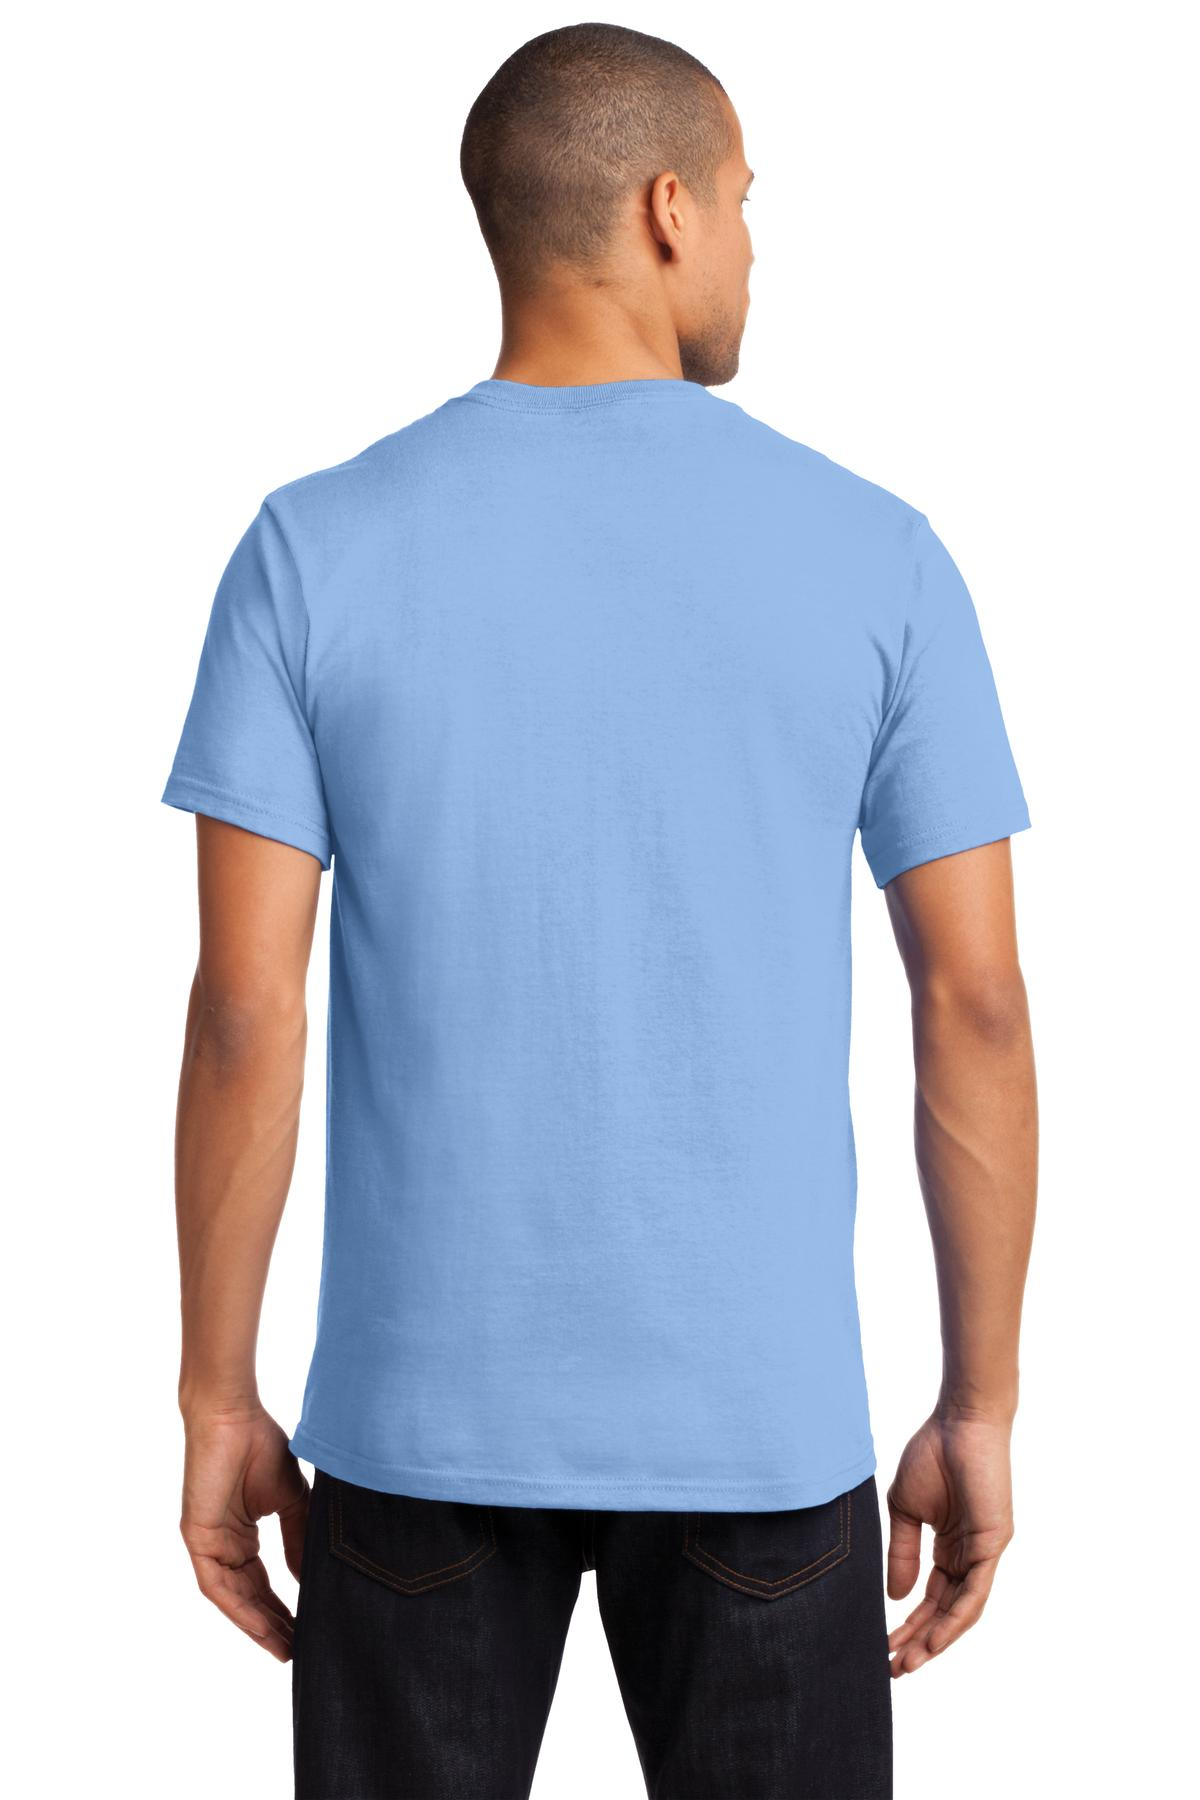 Port-amp-Company-Tall-Essential-TShirt-with-Pocket-PC61PT-Size-LT-4XLT thumbnail 20